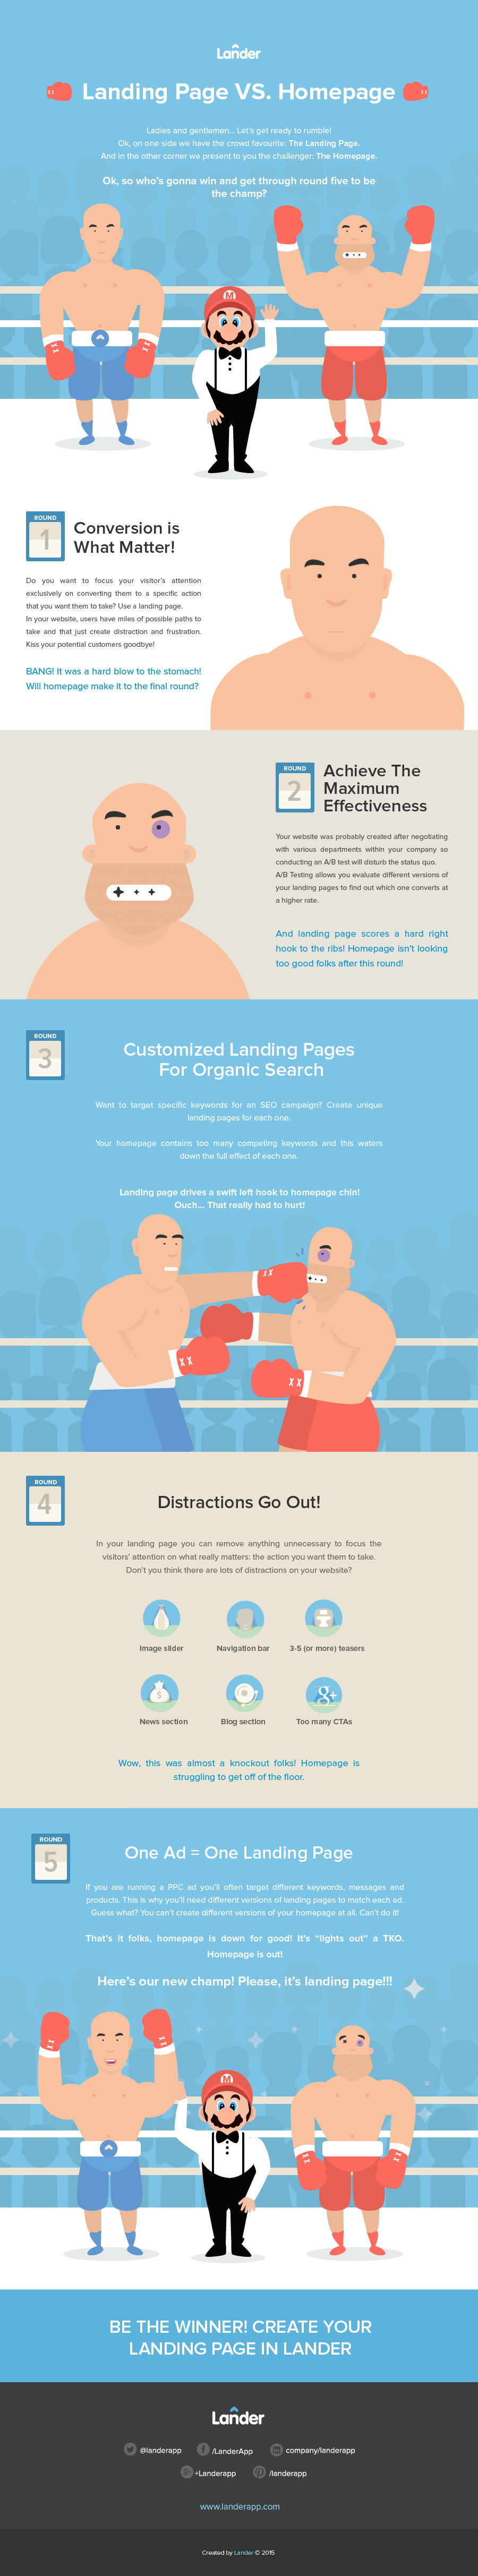 Advertising-Infographics-Landing-Page-vs-HomePage-infographic Advertising Infographics : Landing Page vs HomePage #infographic